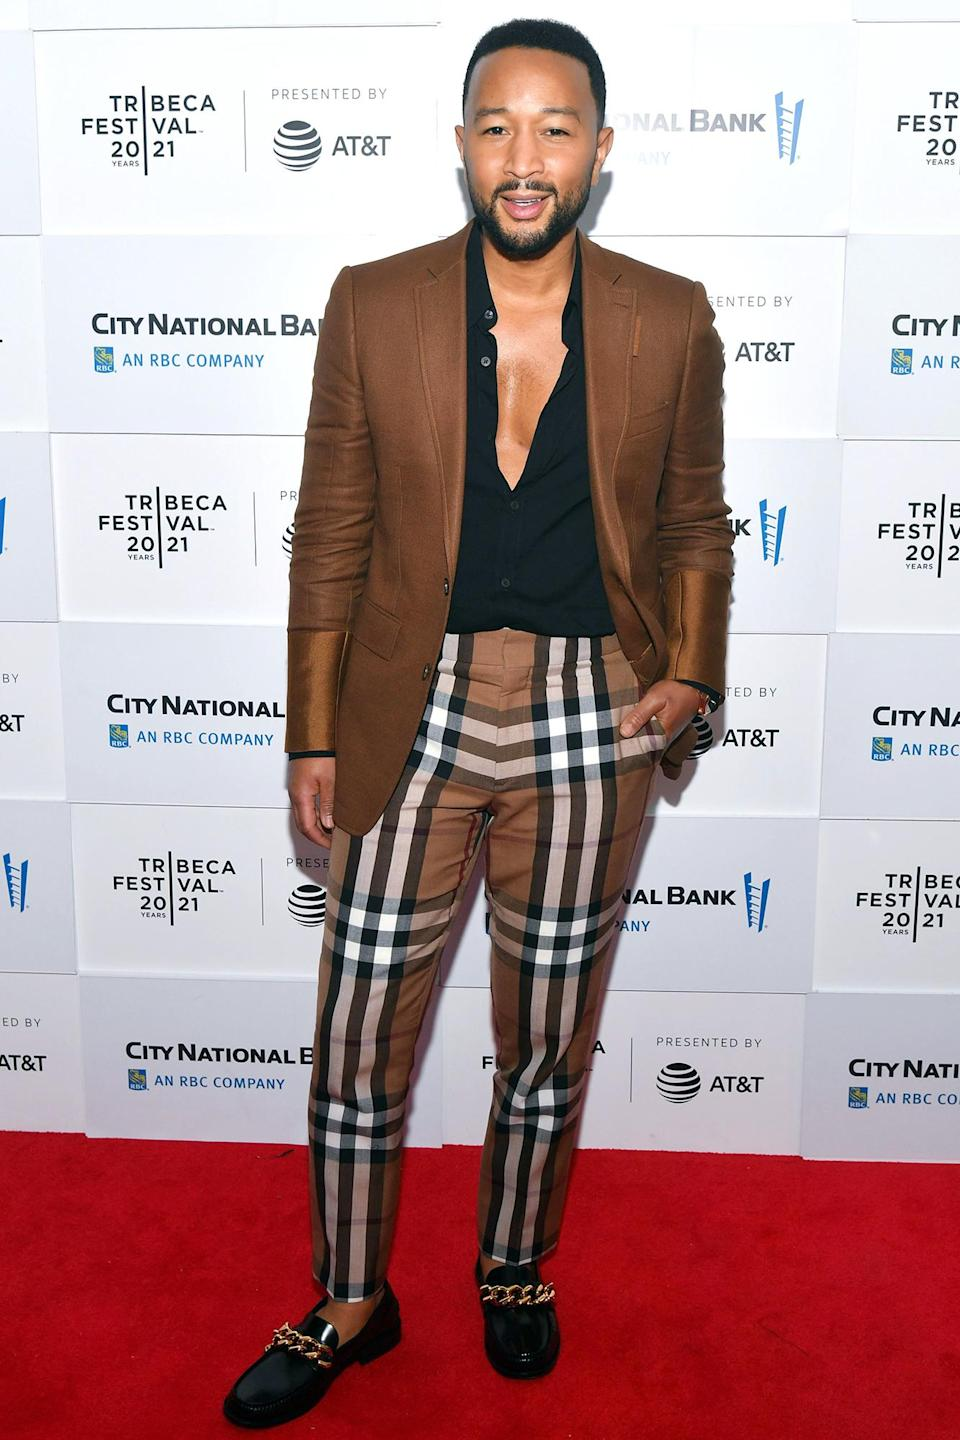 <p>John Legend attends the premiere of<i> Legends of the Underground</i>, which he co-executive produced, at the Tribeca Film Festival on June 10 in N.Y.C. </p>